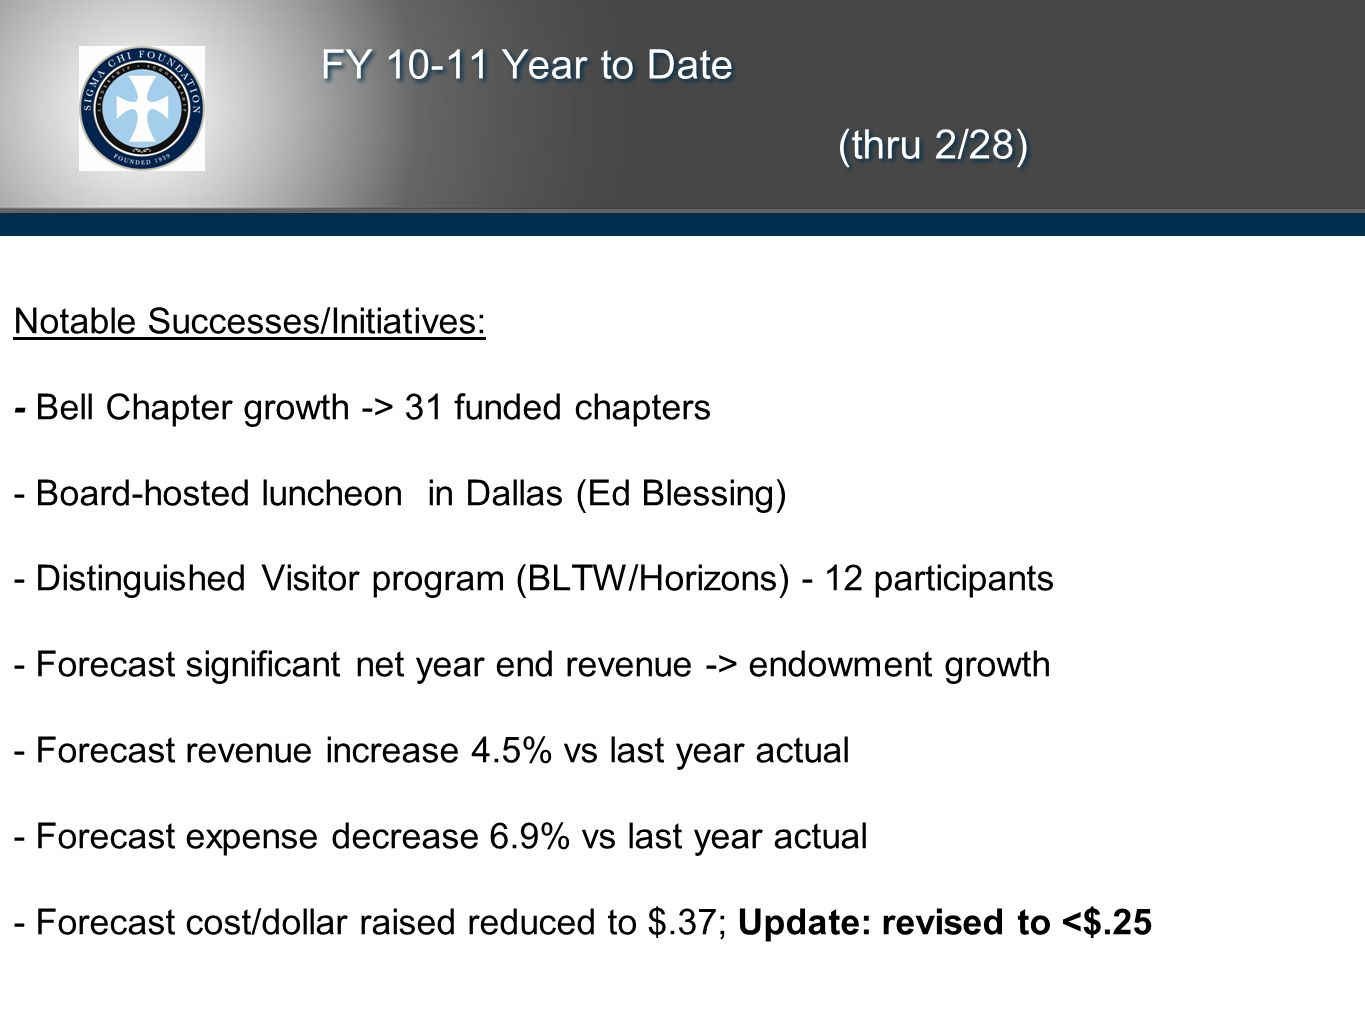 FY 10-11 Year to Date (thru 2/28) Notable Successes/Initiatives: - Bell Chapter growth -> 31 funded chapters - Board-hosted luncheon in Dallas (Ed Blessing) - Distinguished Visitor program (BLTW/Horizons) - 12 participants - Forecast significant net year end revenue -> endowment growth - Forecast revenue increase 4.5% vs last year actual - Forecast expense decrease 6.9% vs last year actual - Forecast cost/dollar raised reduced to $.37; Update: revised to <$.25